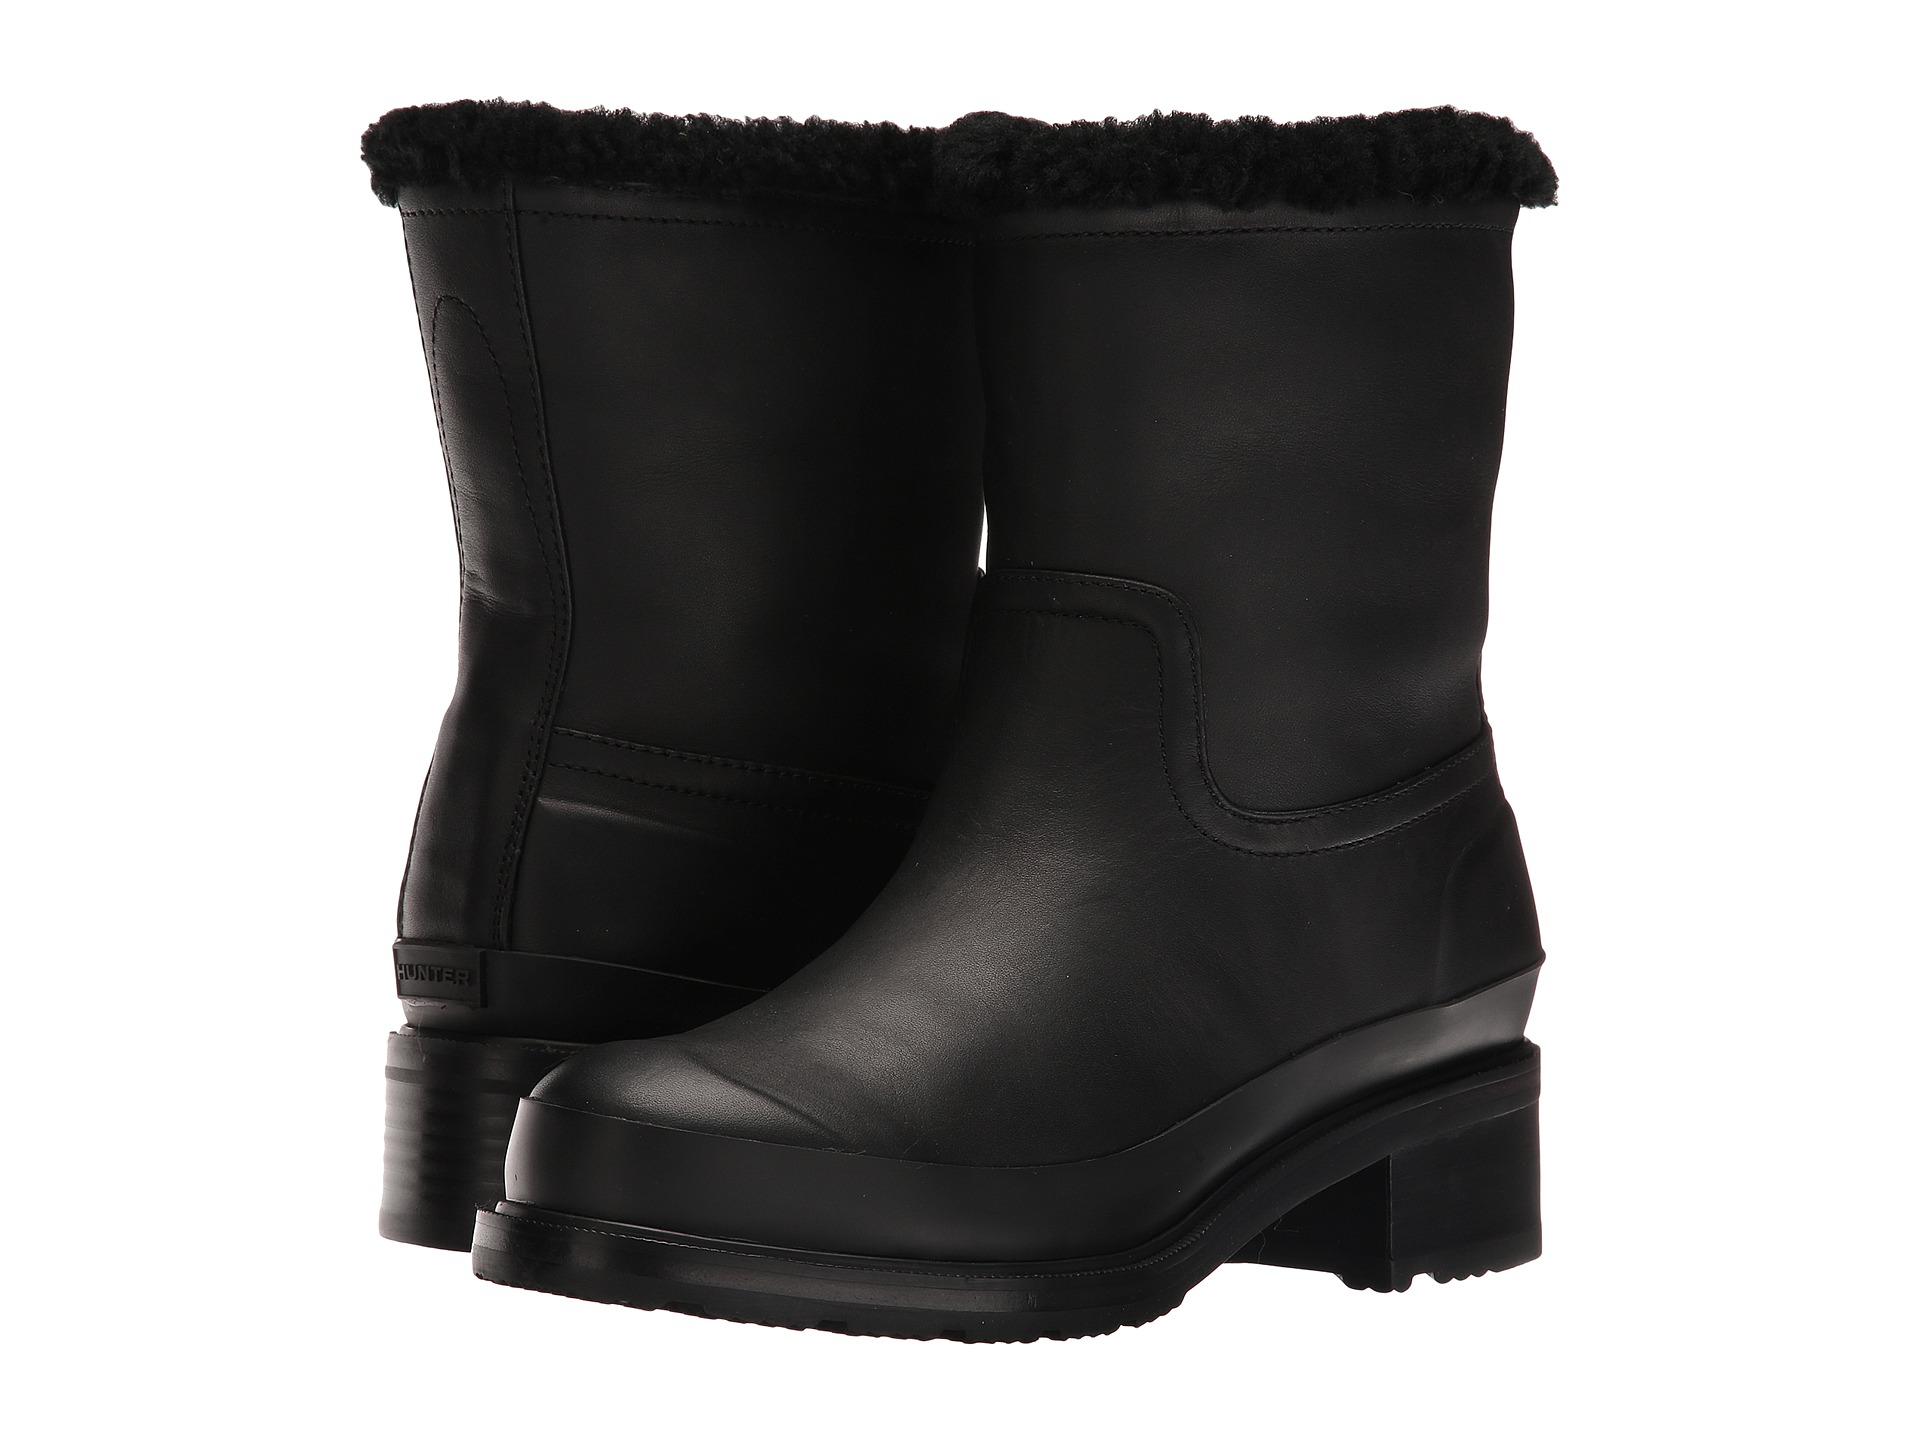 Ankle Boots | Shipped Free at Zappos